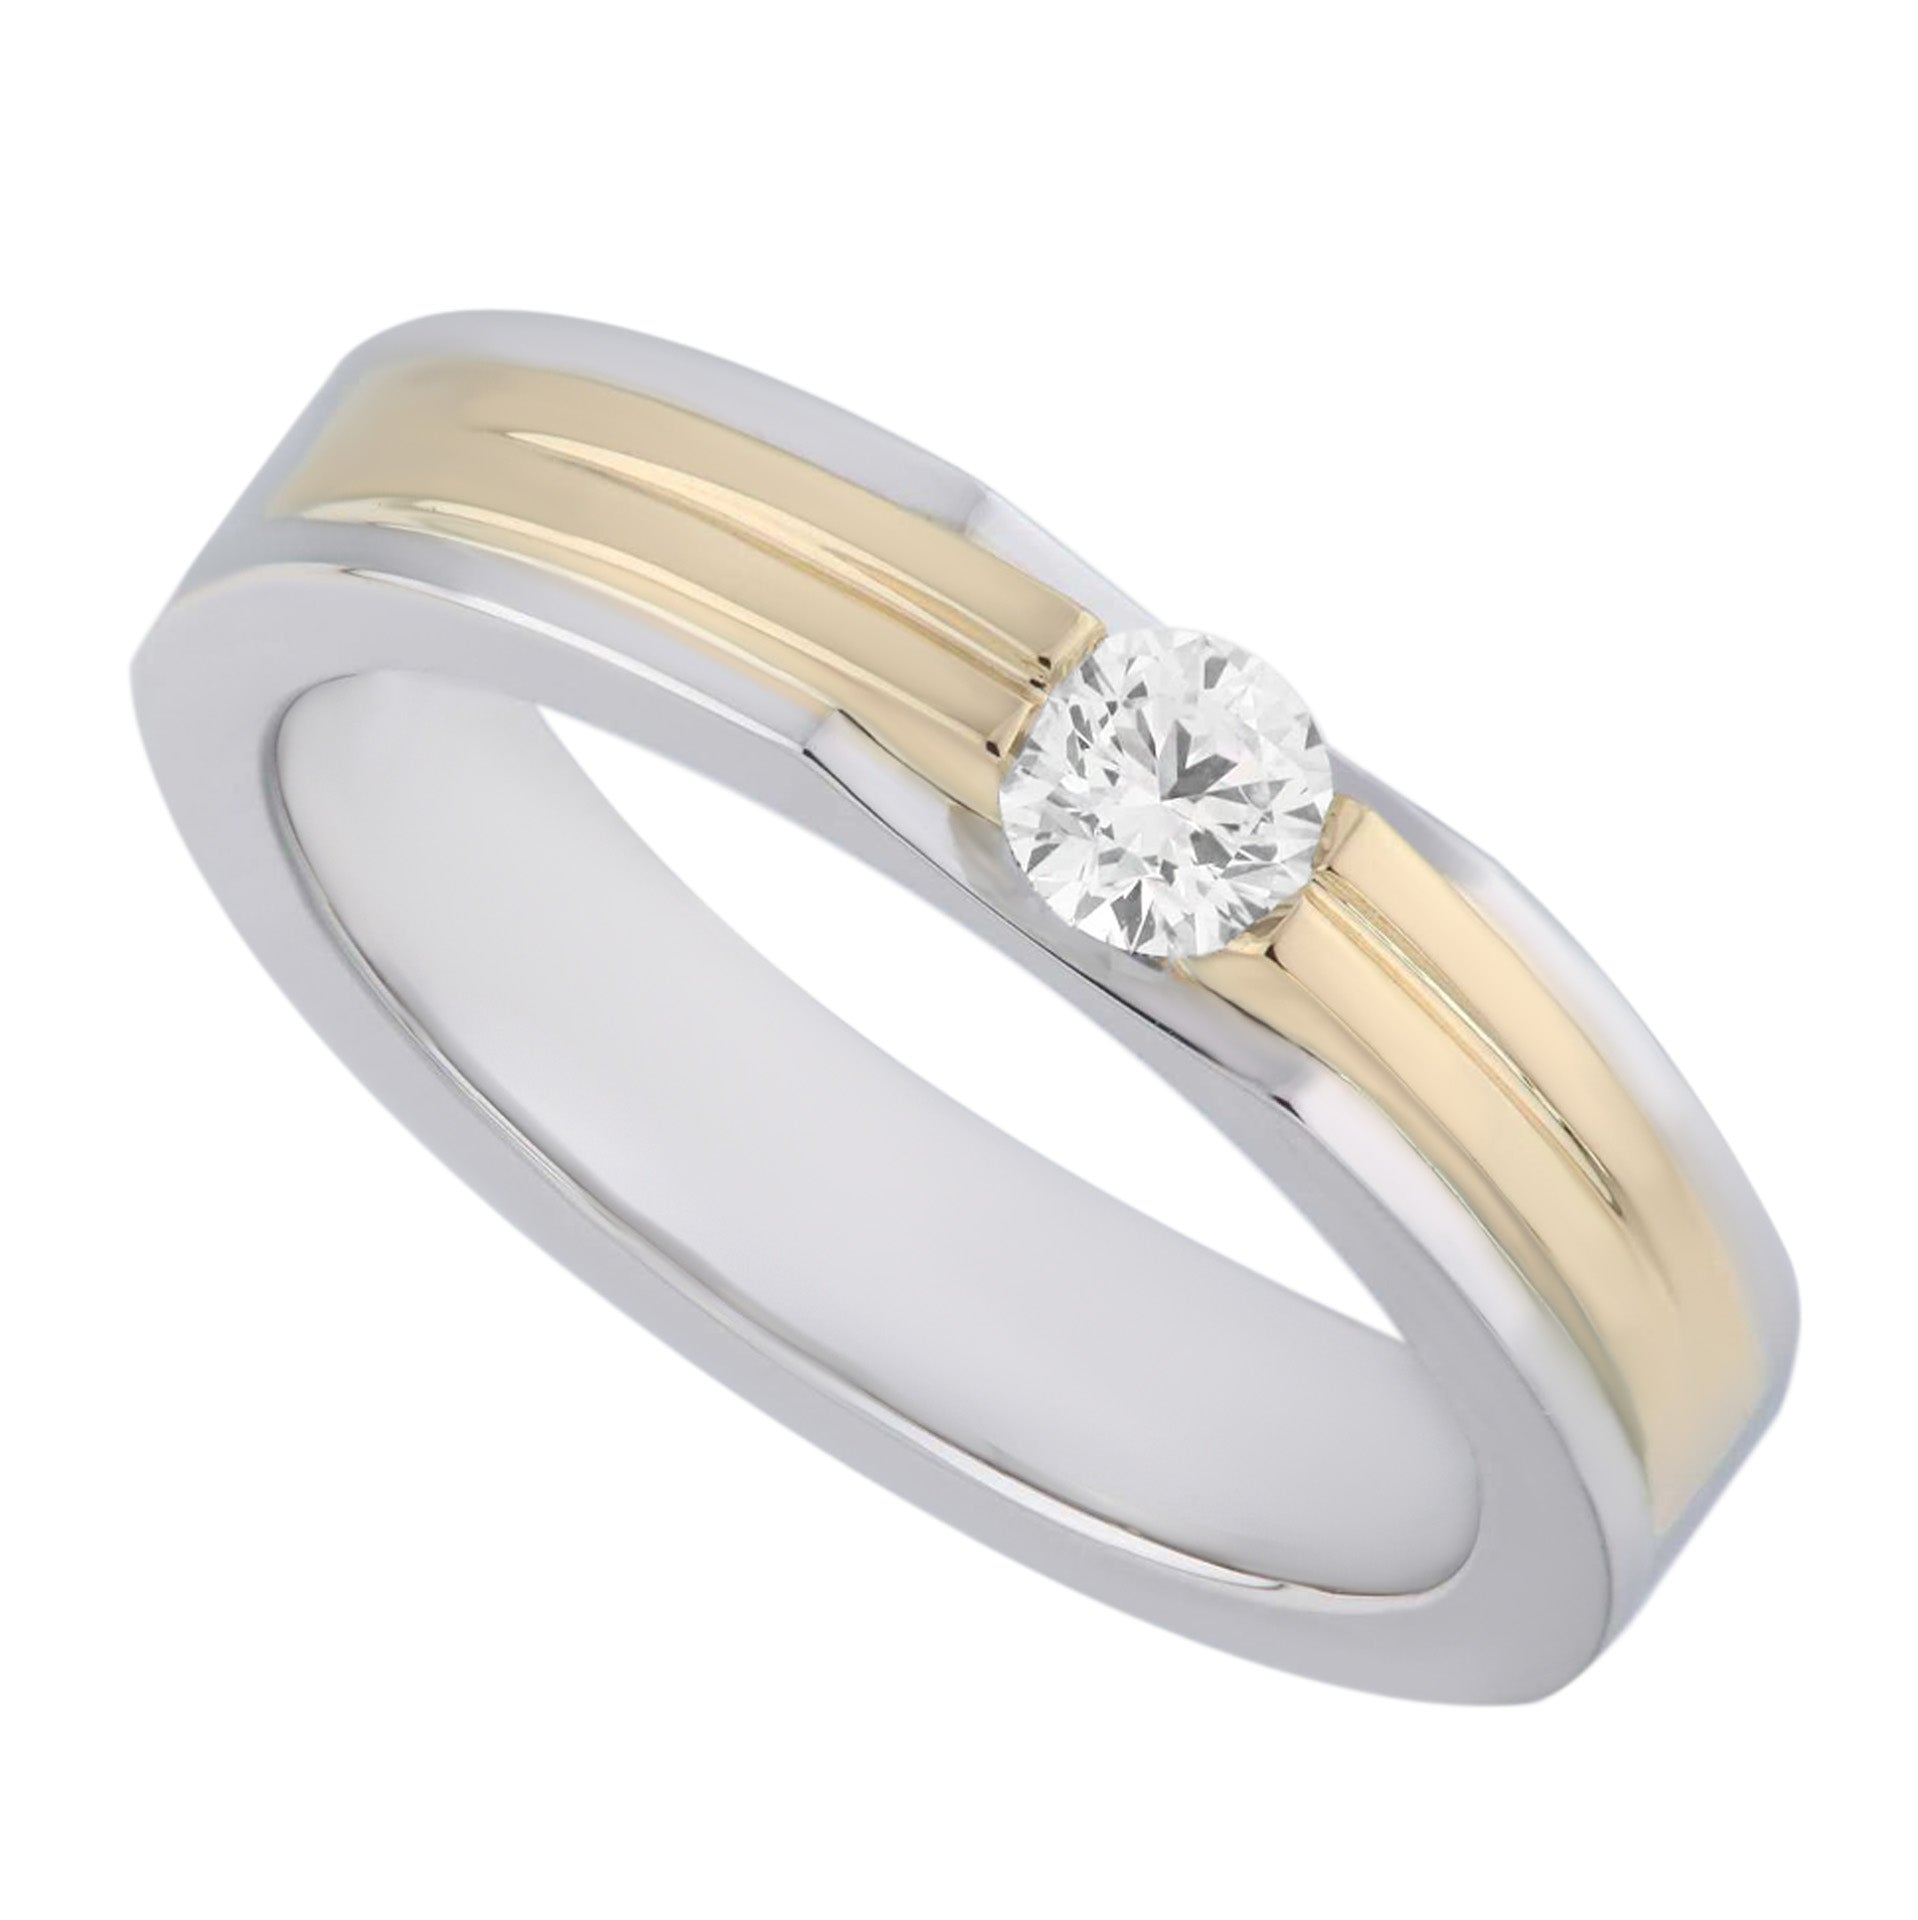 Two Tones White & Yellow Gold Modern Style Ladies Diamond Ring - KARP Jewellery